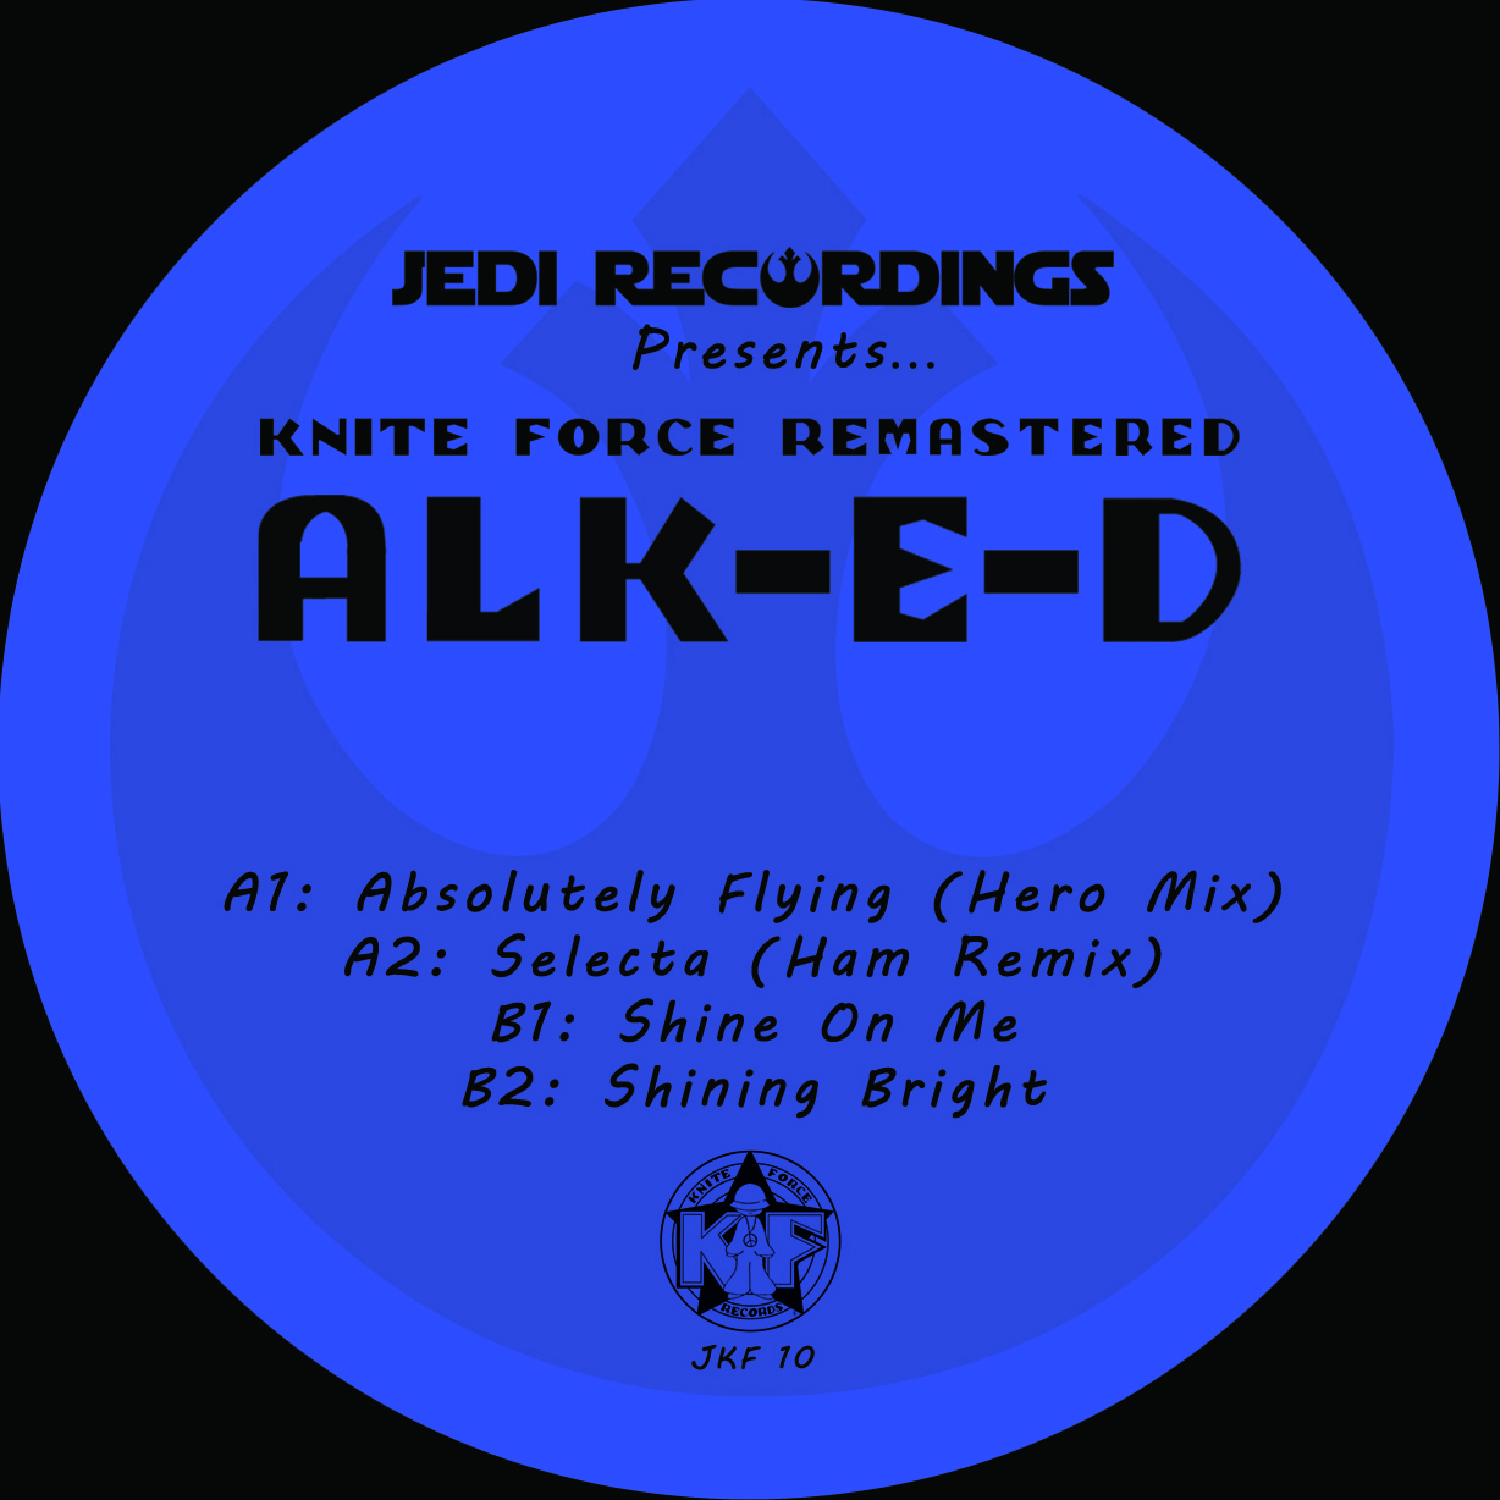 [JKF10] Alk-e-d - Remasters (Digital Only)